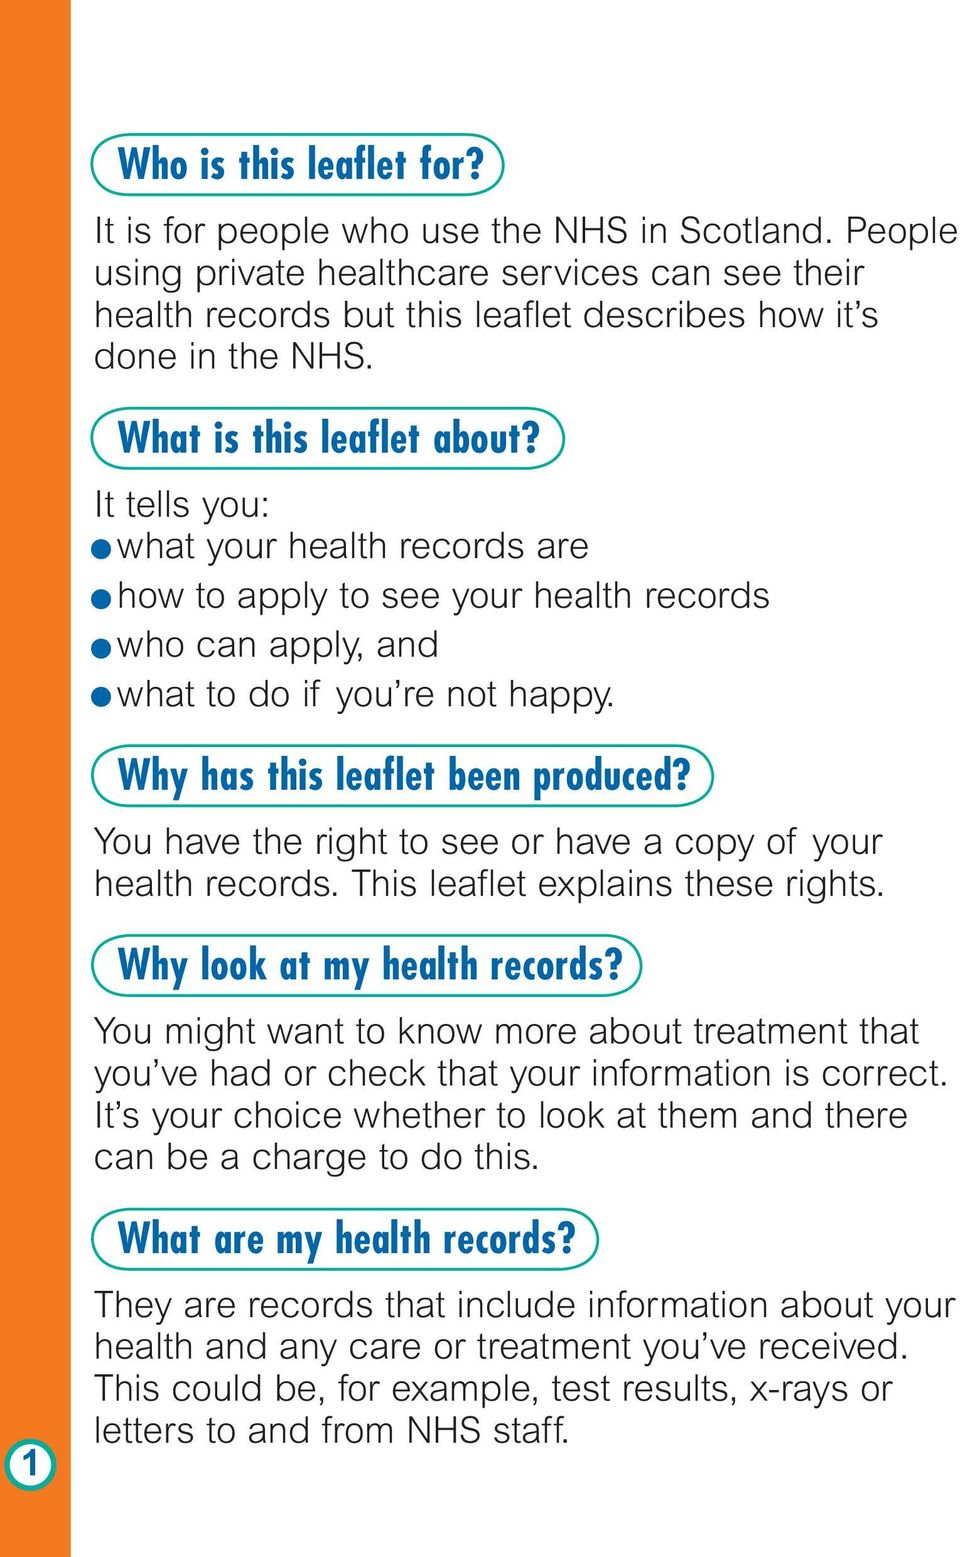 You have the right to see or have a copy of your health records. This leaflet explains these rights. Why look at my health records?